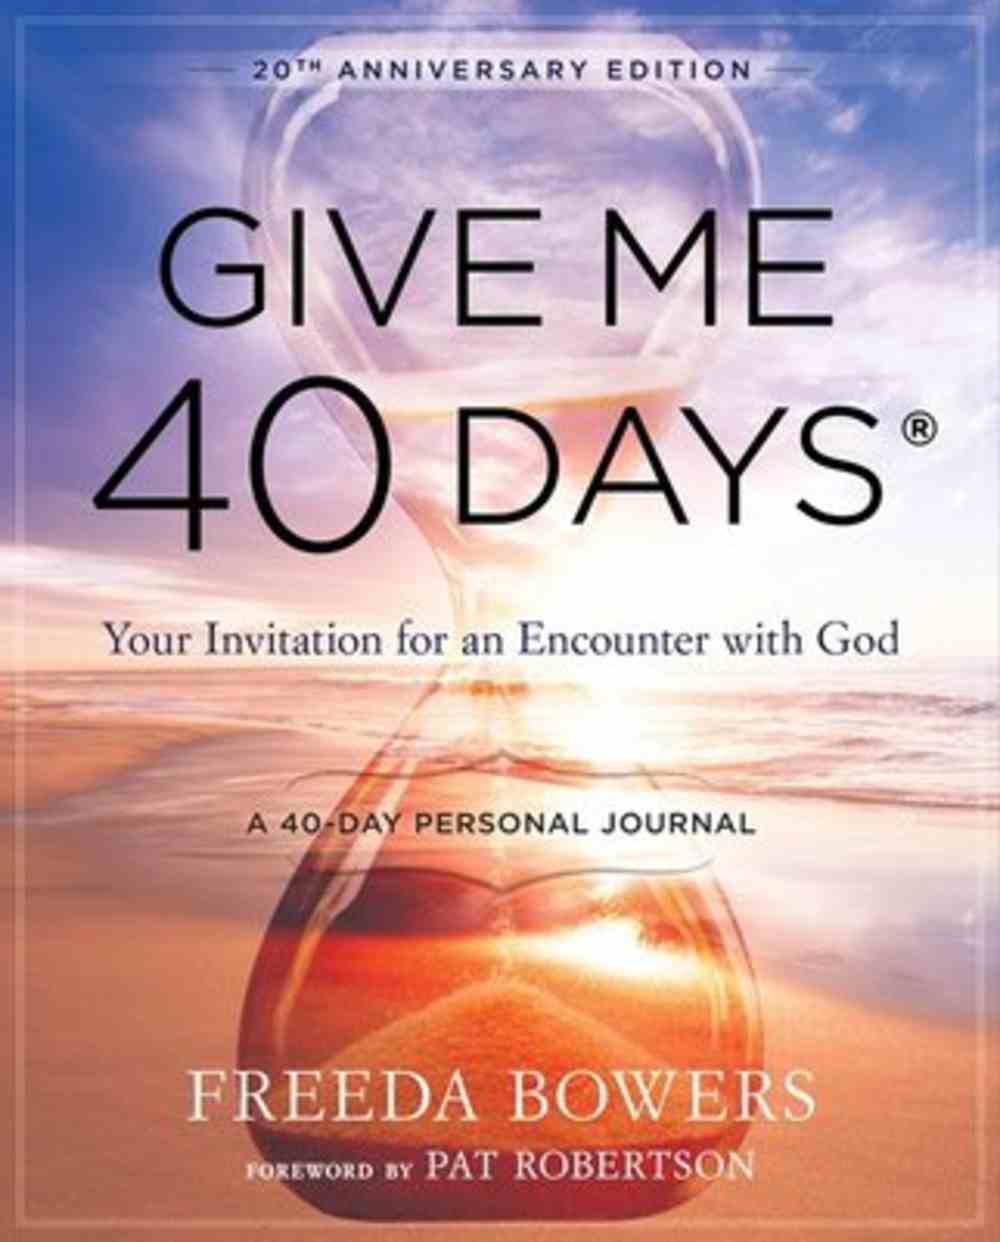 Give Me 40 Days: A Reader's 40 Day Personal Journey: Your Invitation For An Encounter With God (20th Anniversary Edition) Paperback